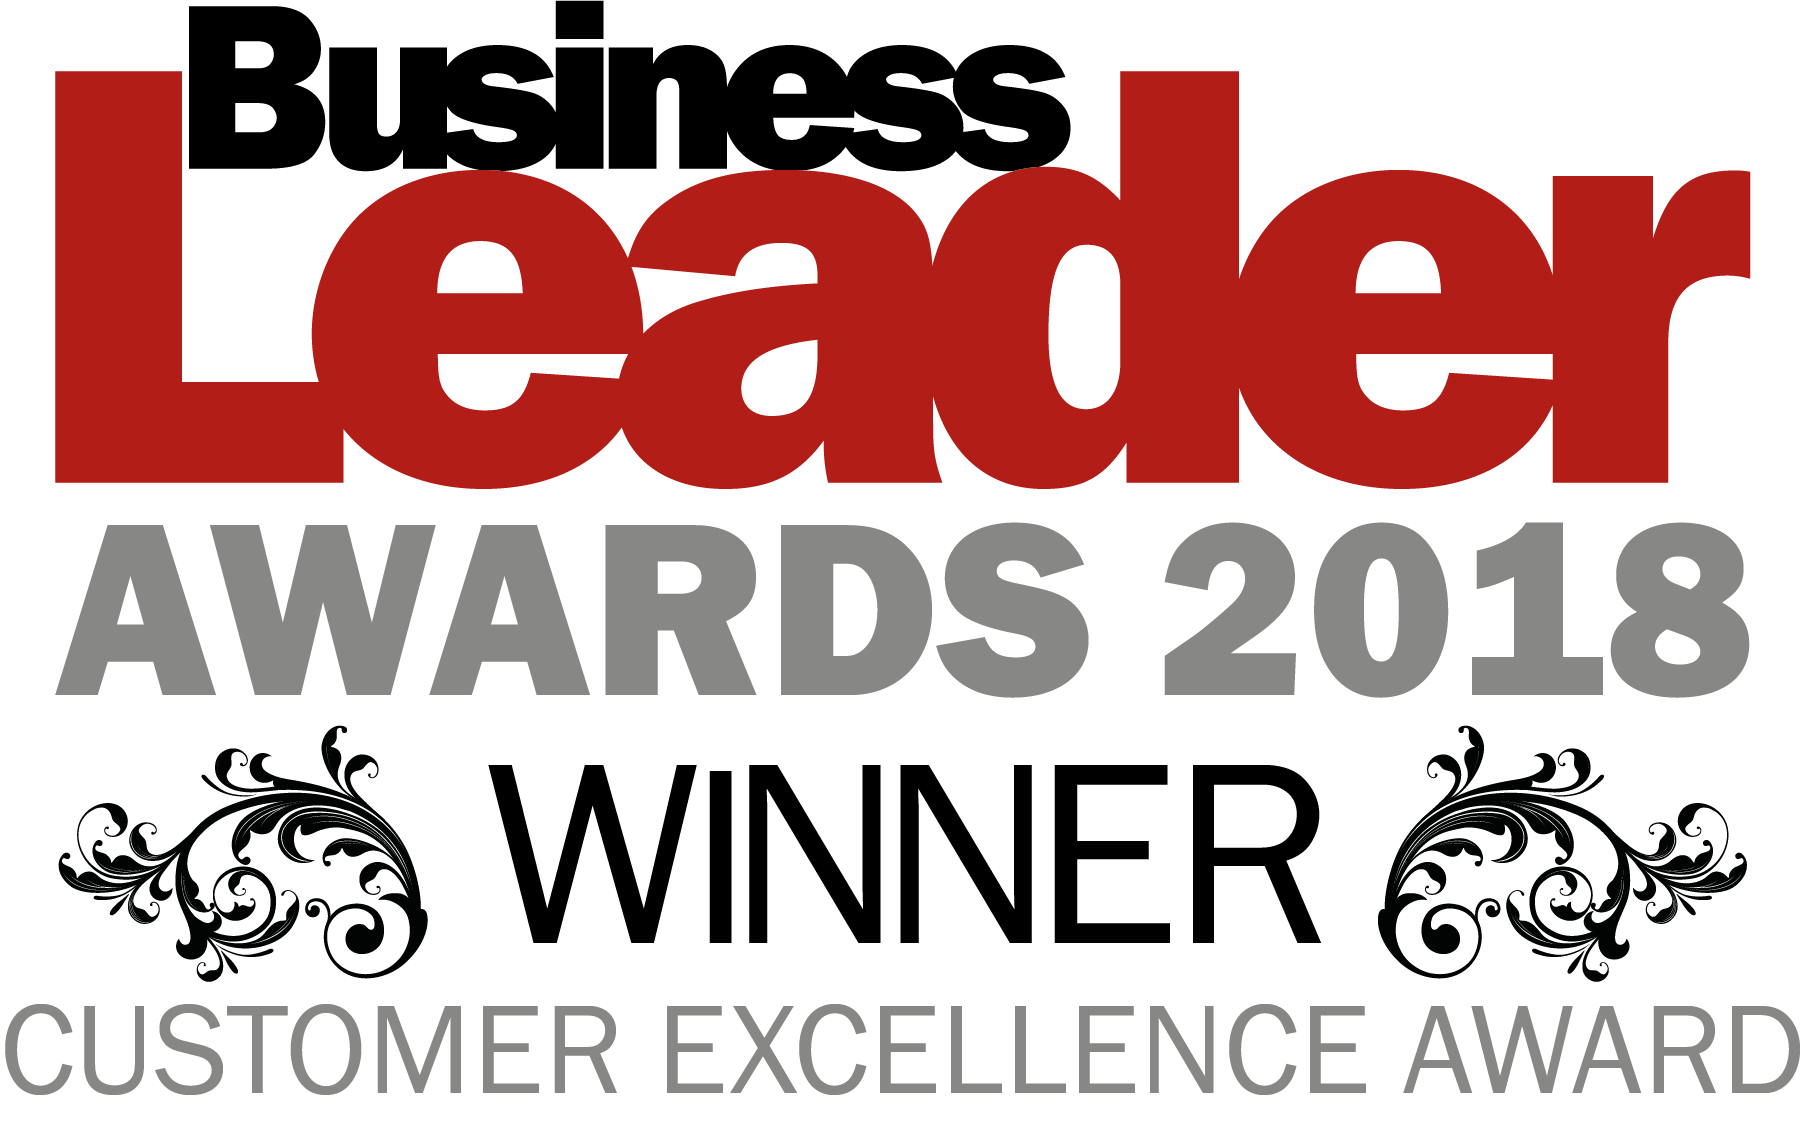 Business leader awards winner logo customer excellence